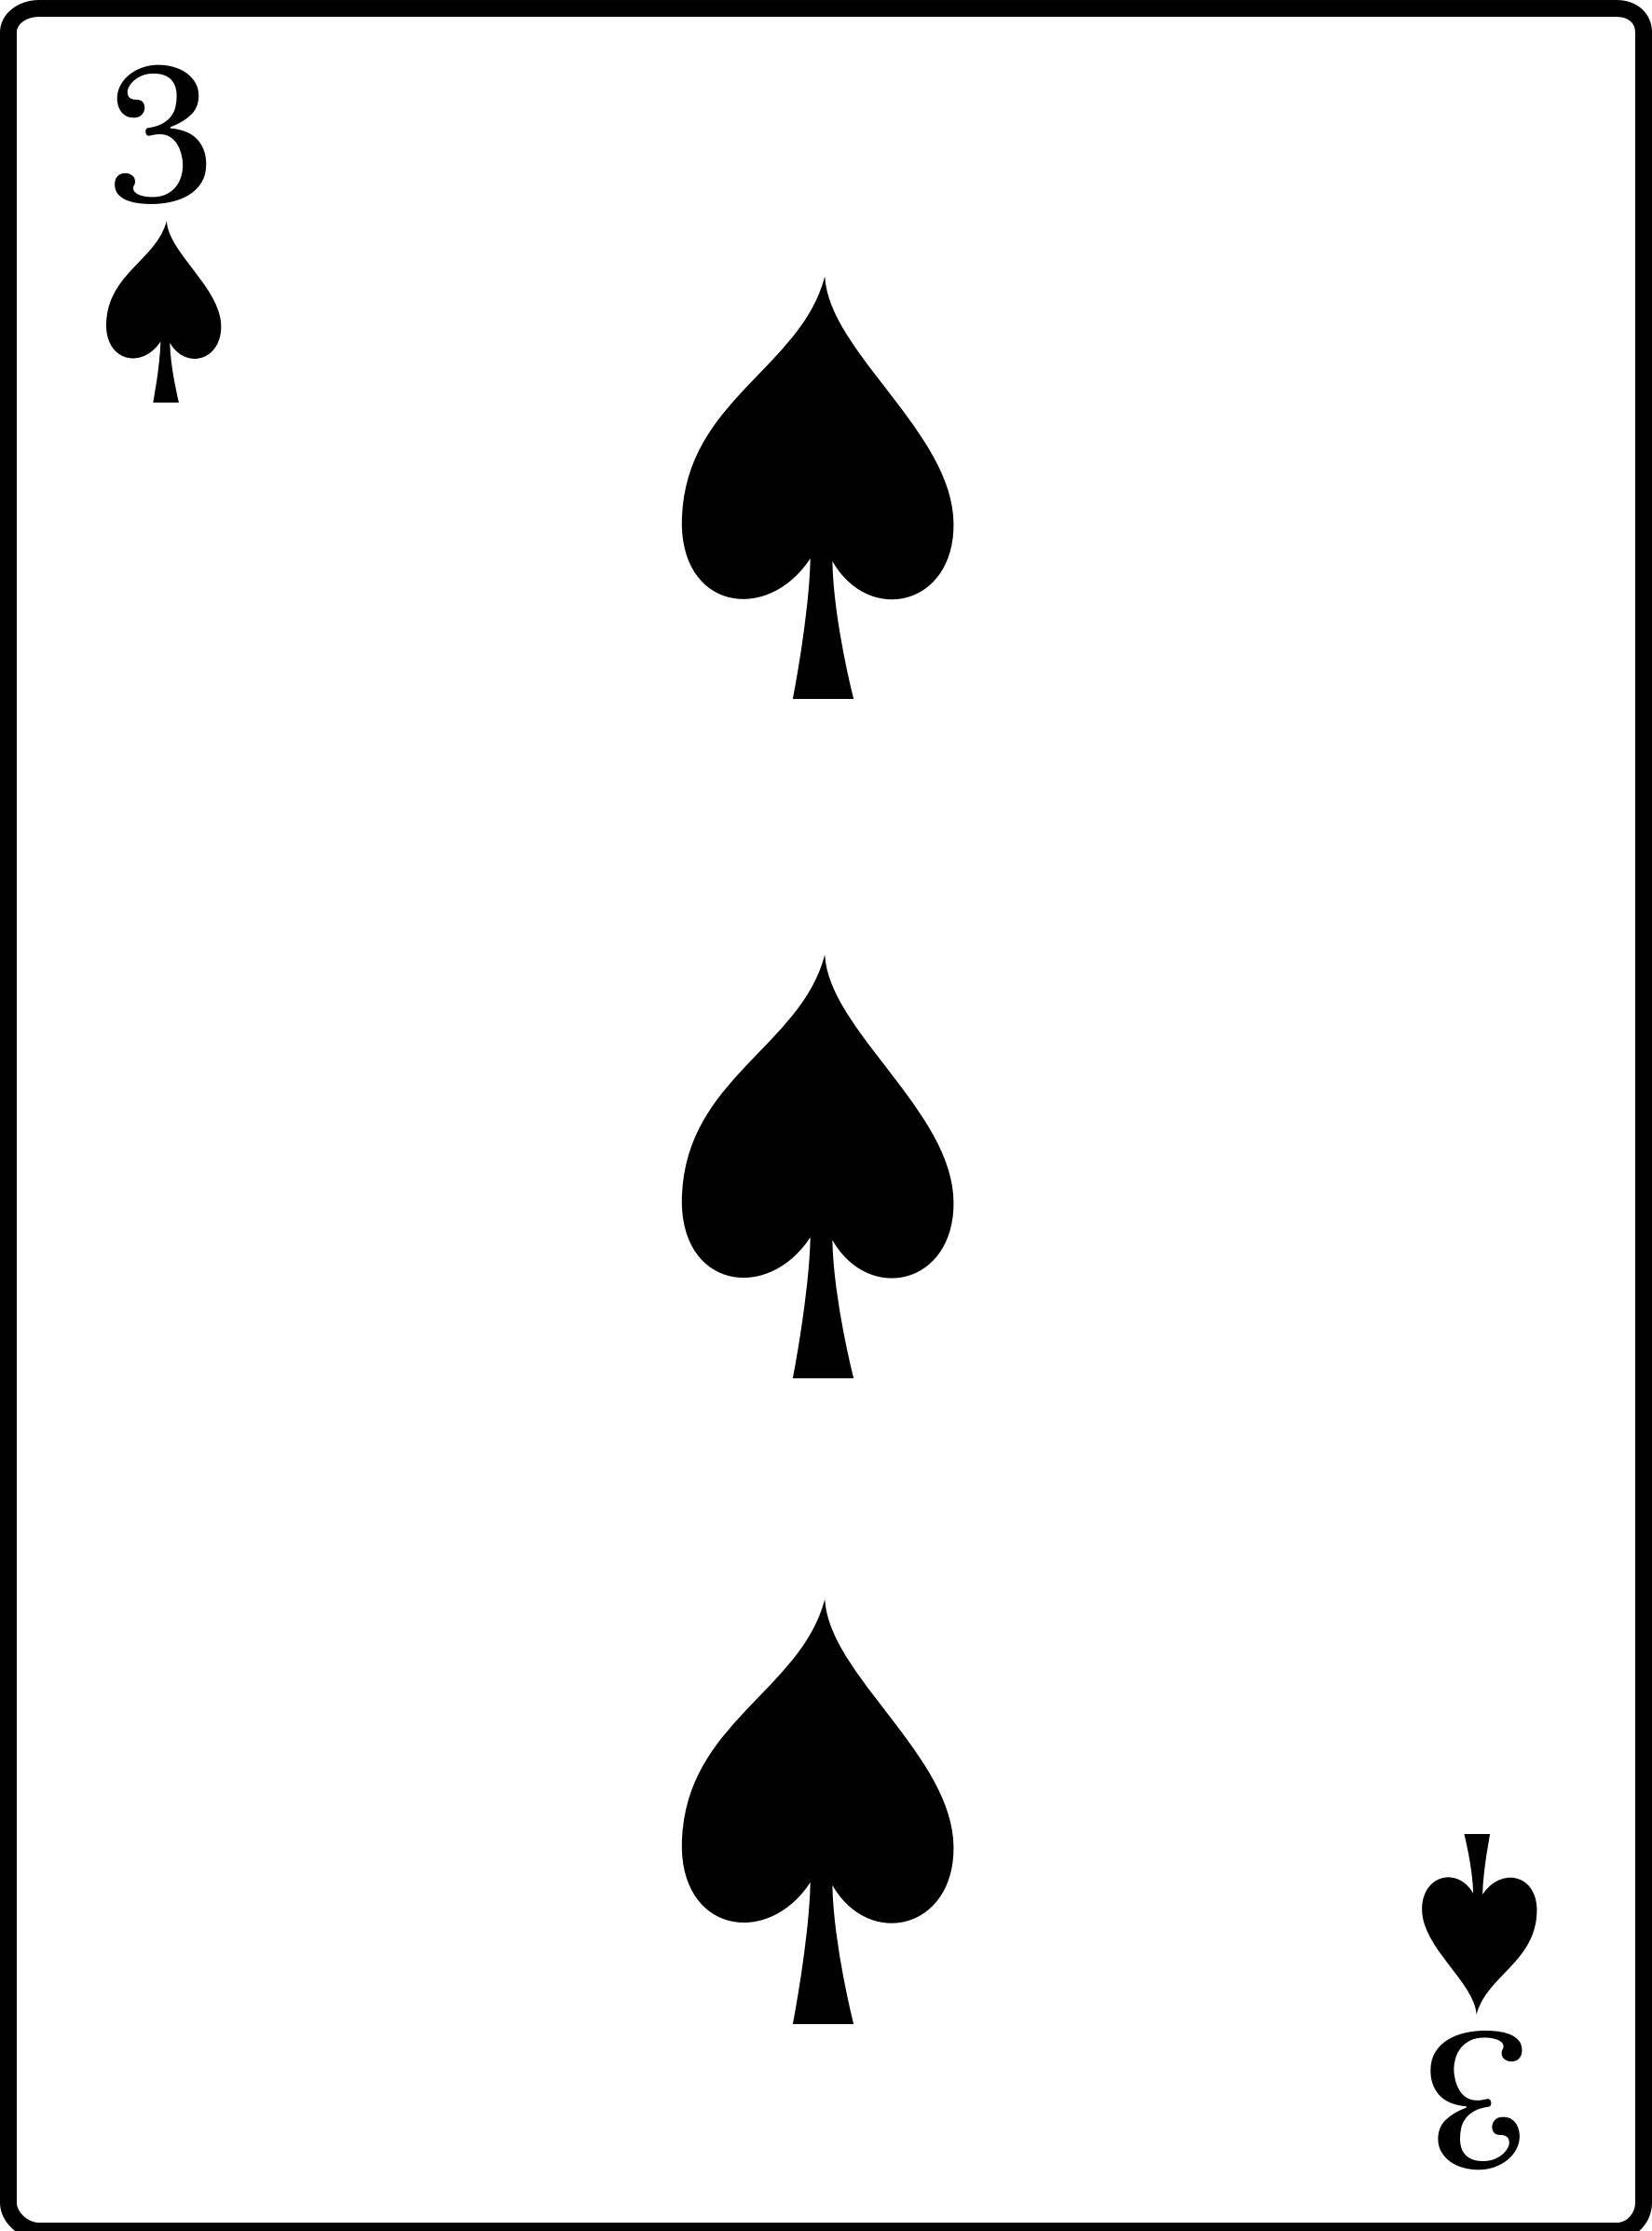 3 of Spades by casino